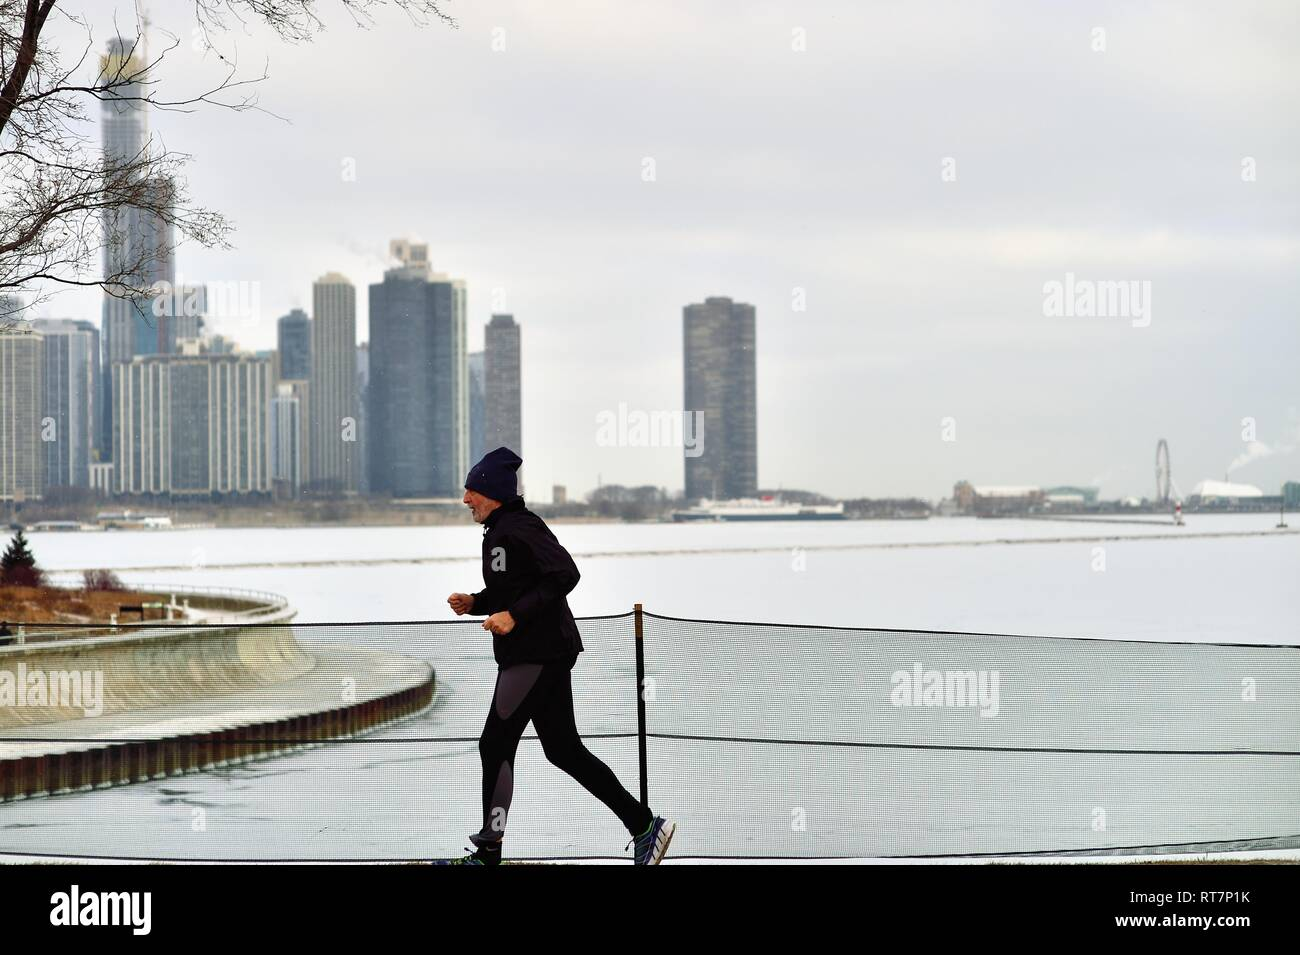 Chicago, Illinois, USA. A lone runner jogs along the Chicago Museum Campus in front of an ice-laden Lake Michigan and a portion of the city skyline. - Stock Image